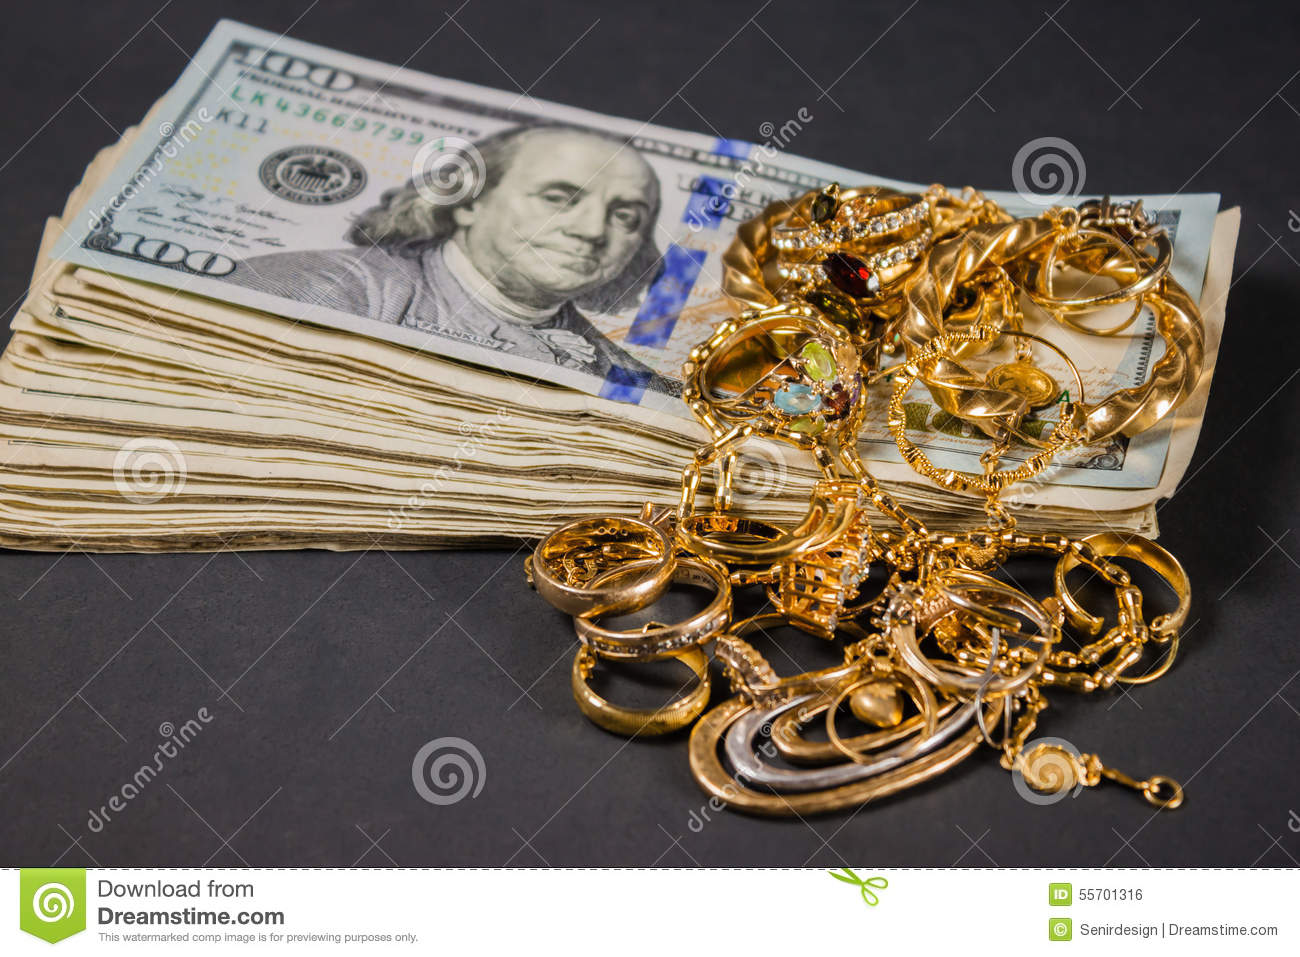 Cash for gold 005